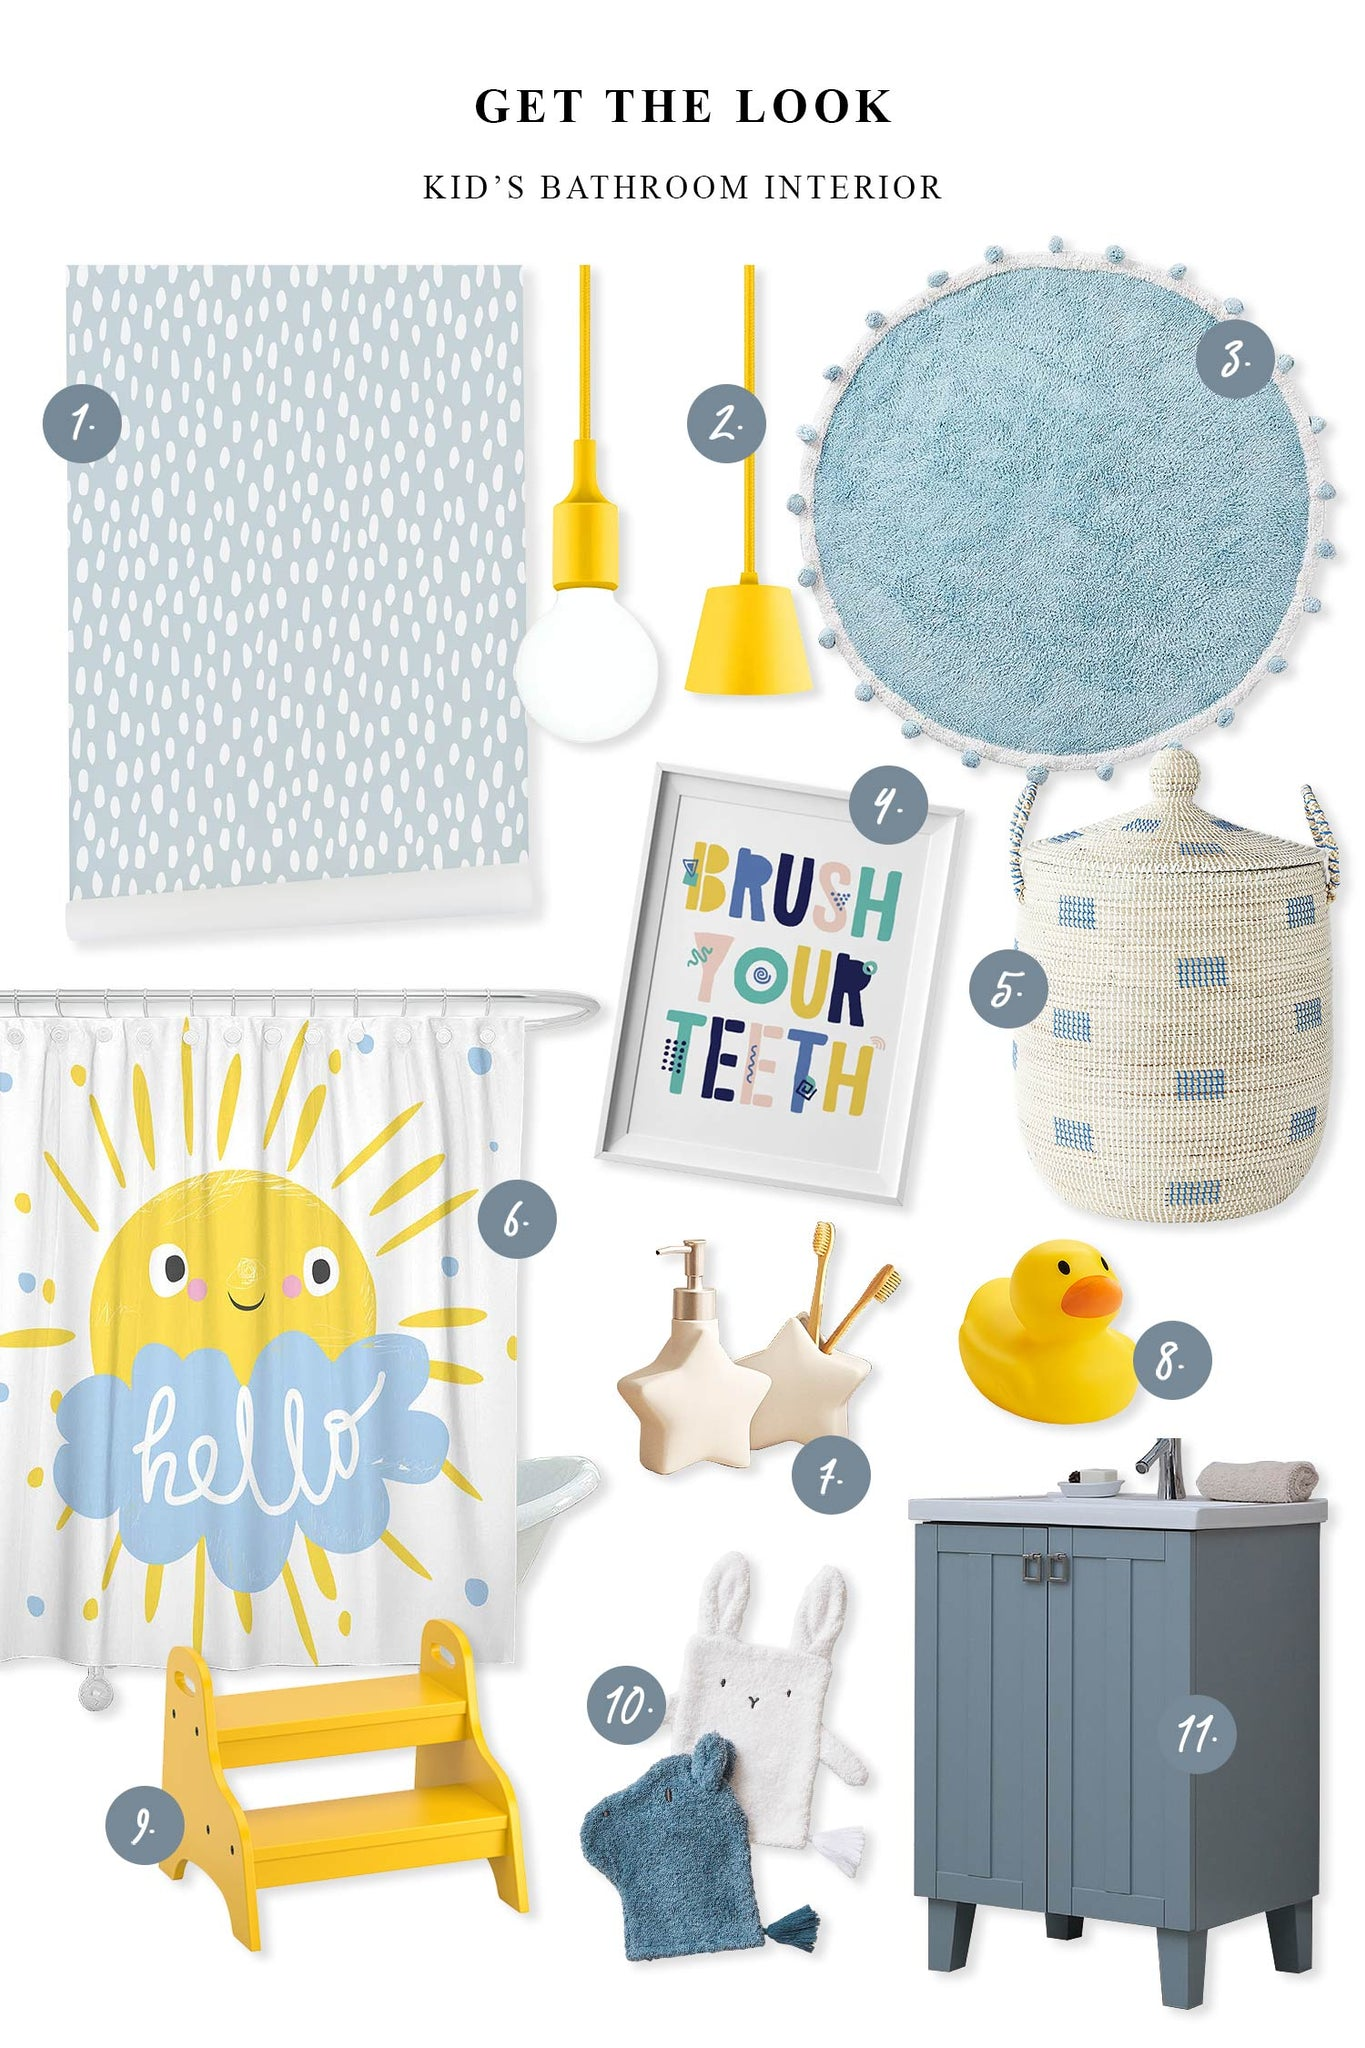 whimsical kid's bathroom interior mood board with furniture and decor